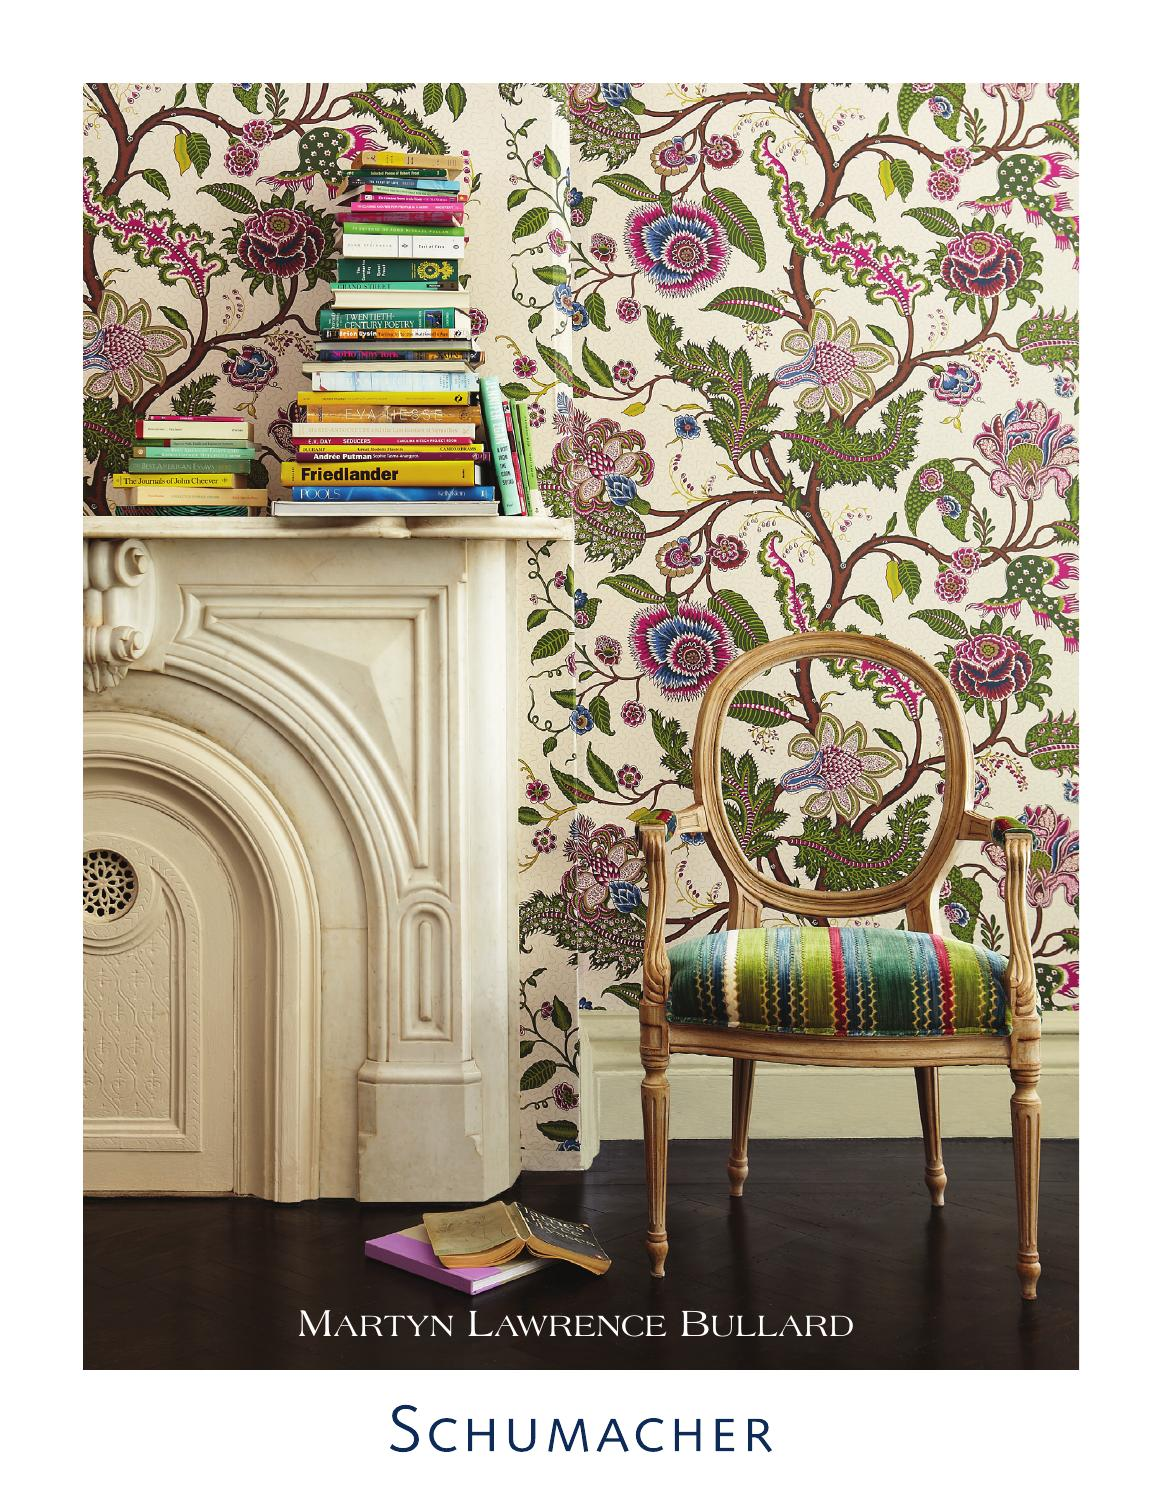 Martyn lawrence bullard wallcoverings for schumacher by for Schumacher martyn lawrence bullard